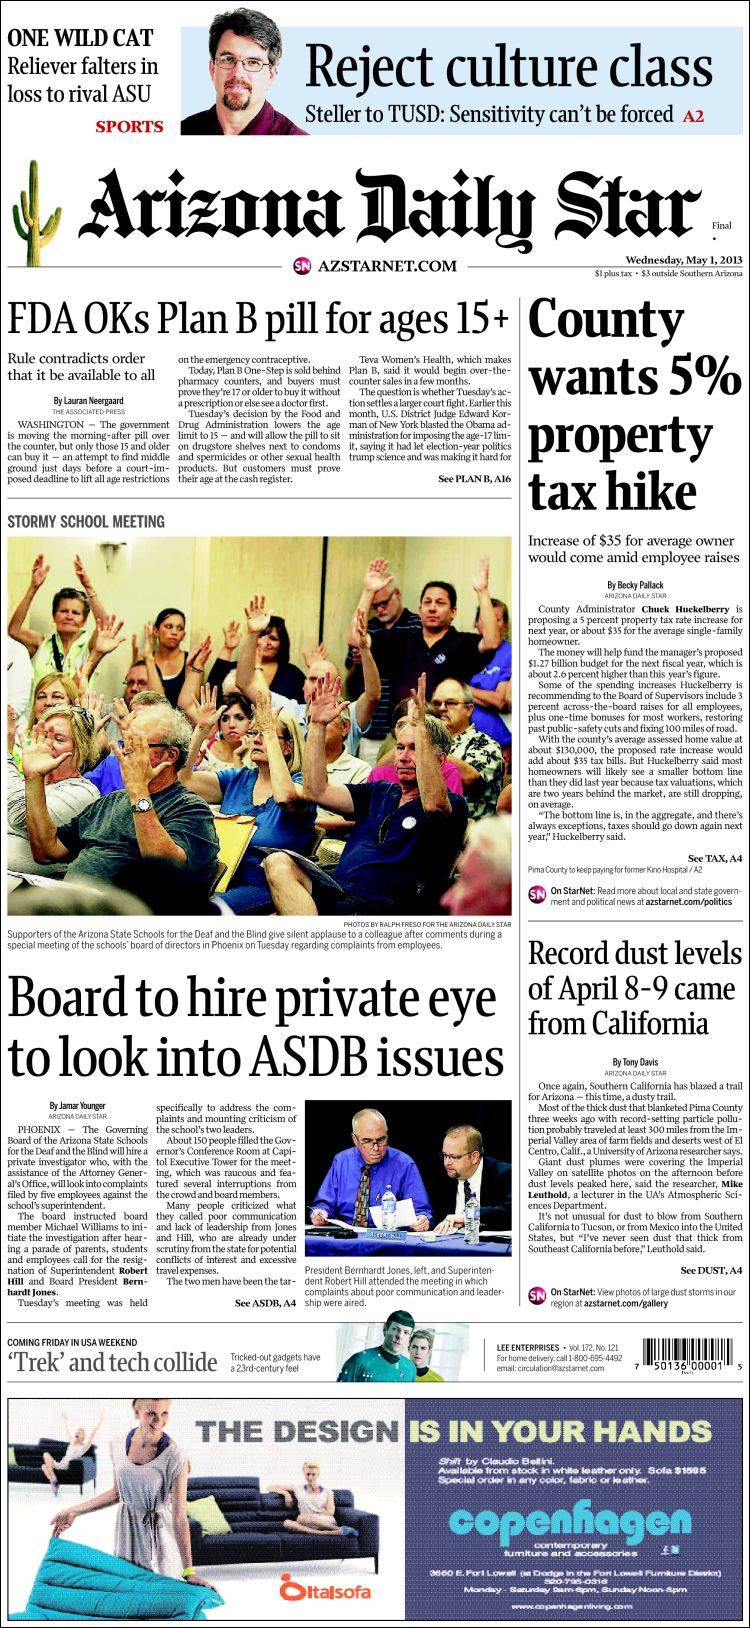 Arizona_daily_star-2013-05-01